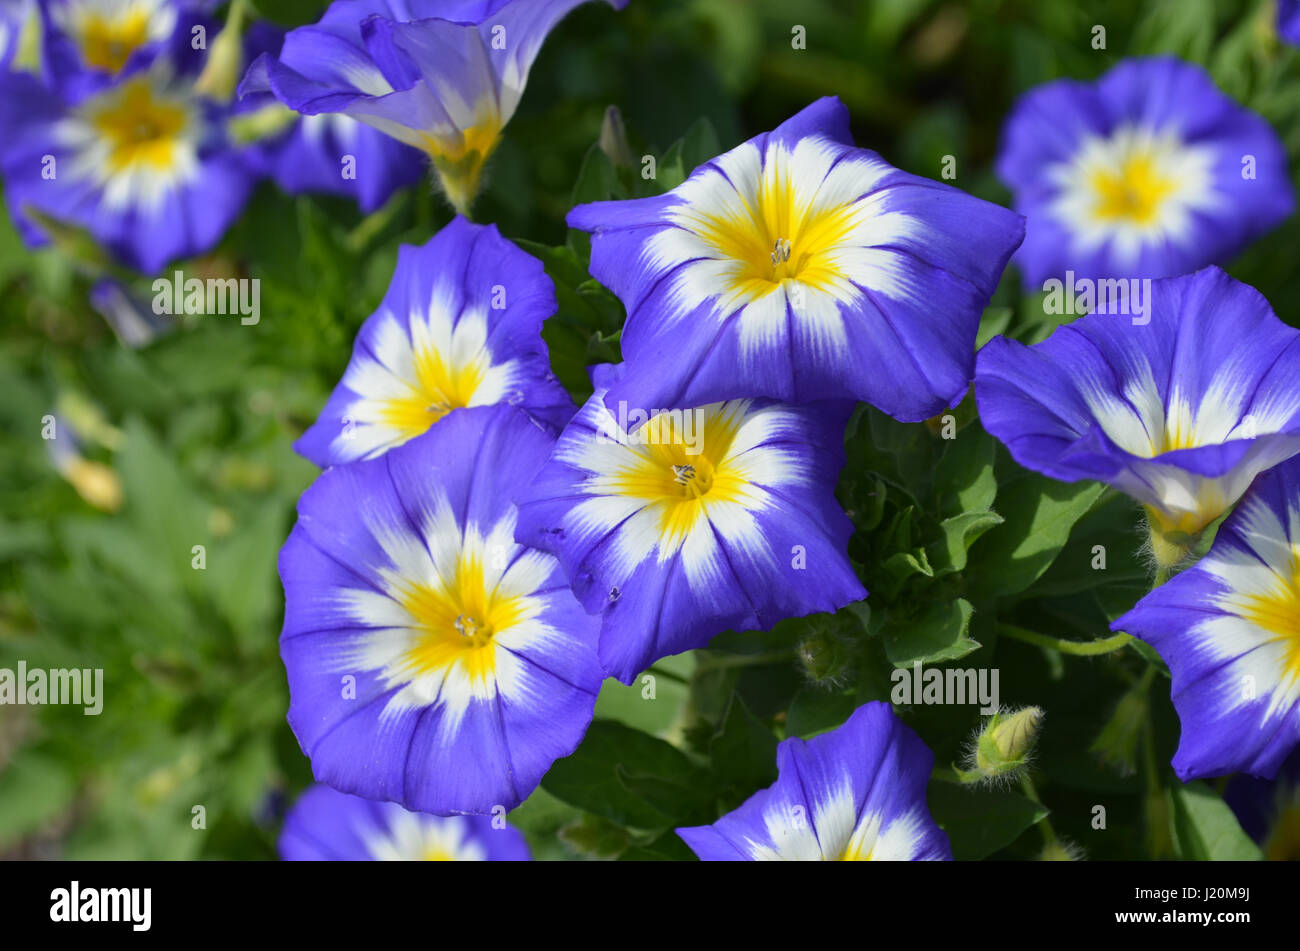 Gorgeous garden with blooming blue and yellow flowering morning glories. - Stock Image